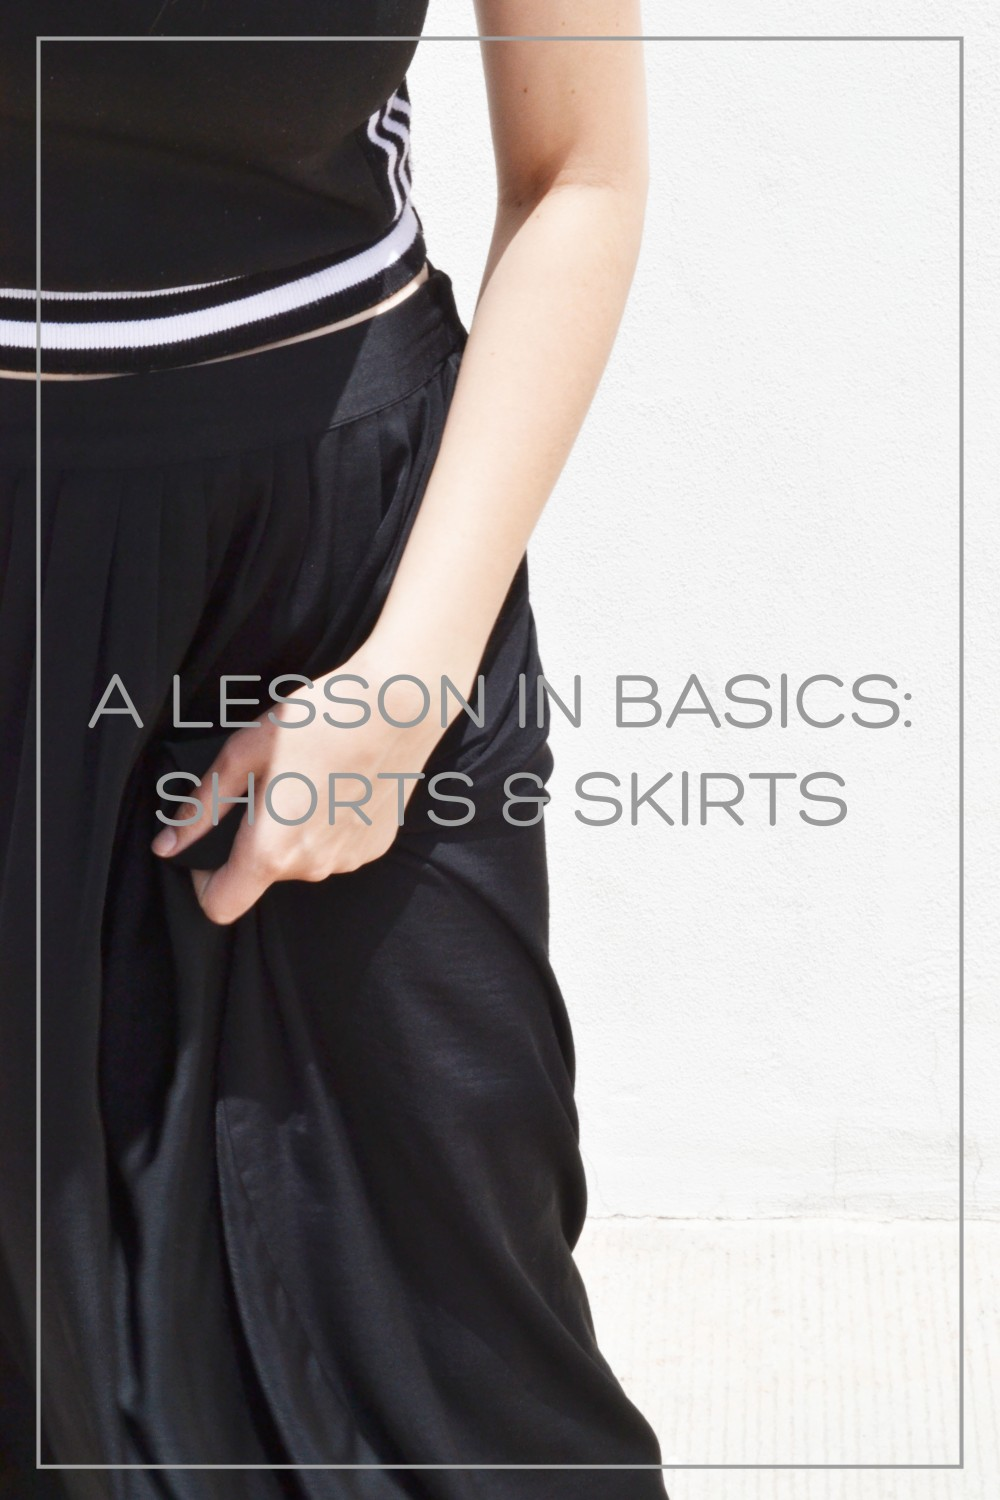 BASICS SHORTS AND SKIRTS